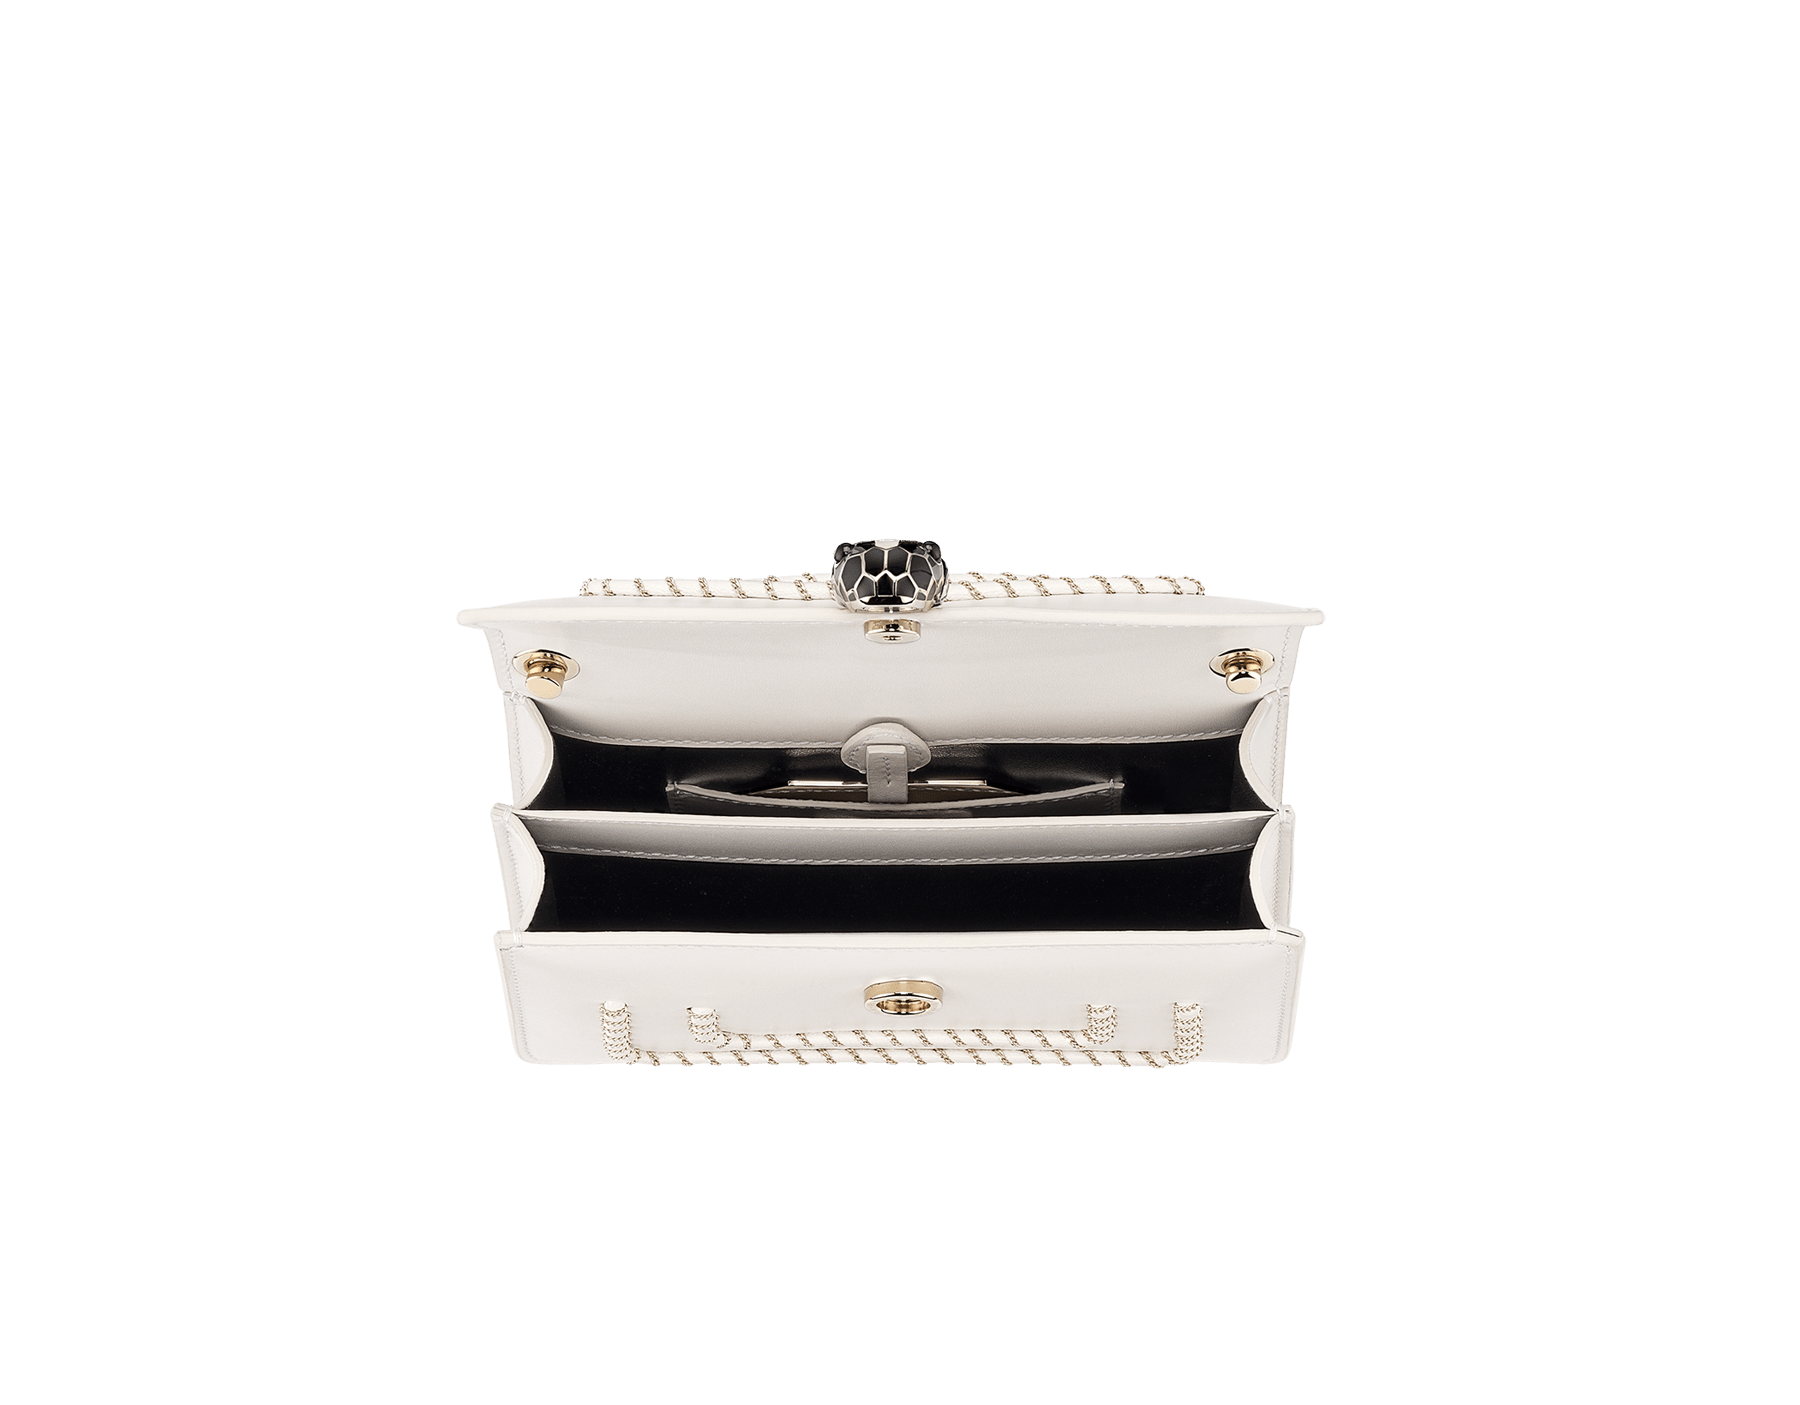 Serpenti Forever mini crossbody bag in white agate calf leather with woven chain décor. Brass light gold-plated snake head closure in black and white enamel, with black onyx eyes. 288045 image 4